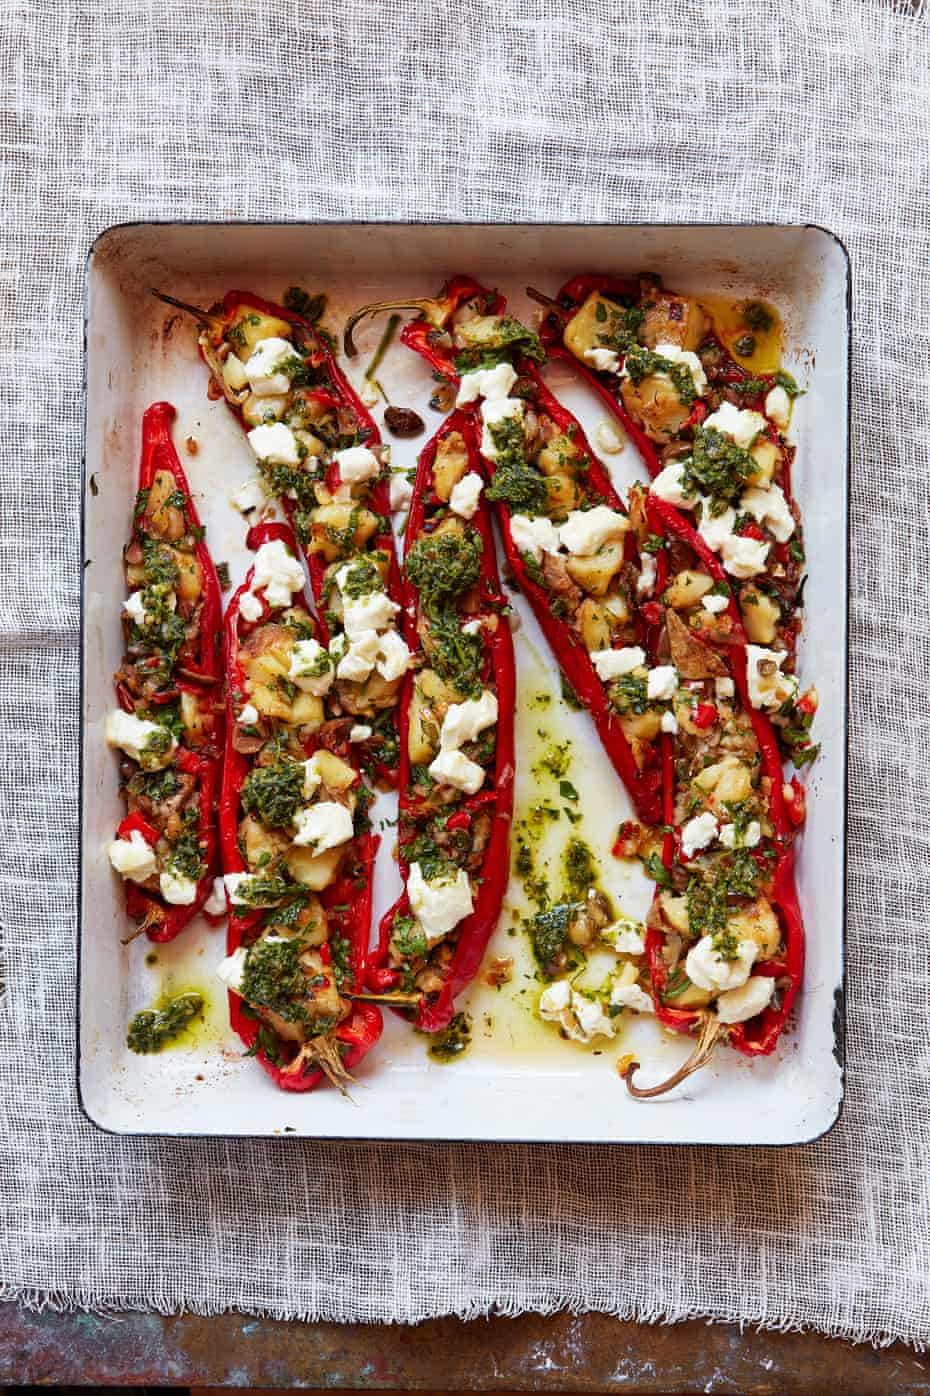 Thomasina Miers' romano peppers stuffed with herbs, olives and goat's cheese.